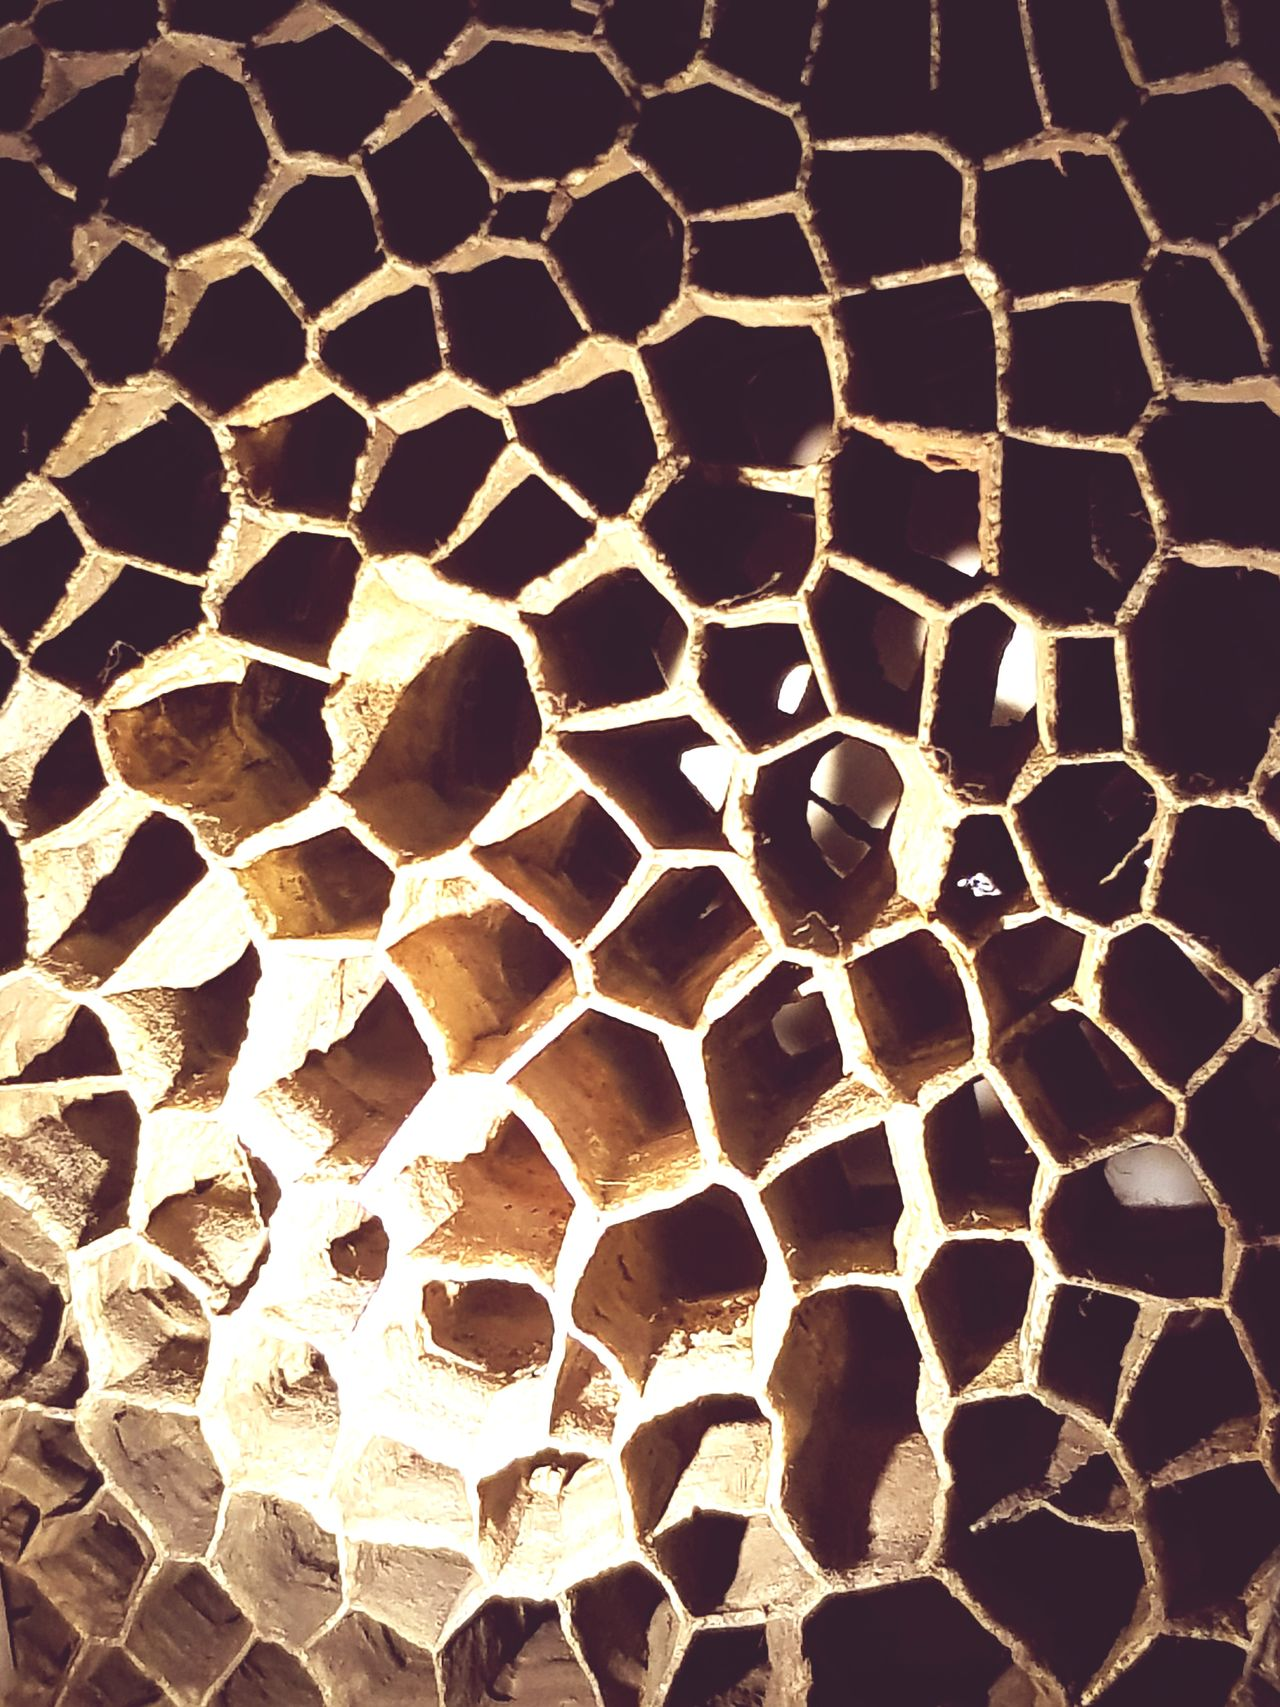 Hexagon Honeycomb Pattern Backgrounds Textured  Close-up No People Indoors  Day Built Structure Beauty In Nature Insect Trypophobia Holes Holes In Rock Architecture Nature Animal Themes Animal Behavior Animals In The Wild United Kingdom